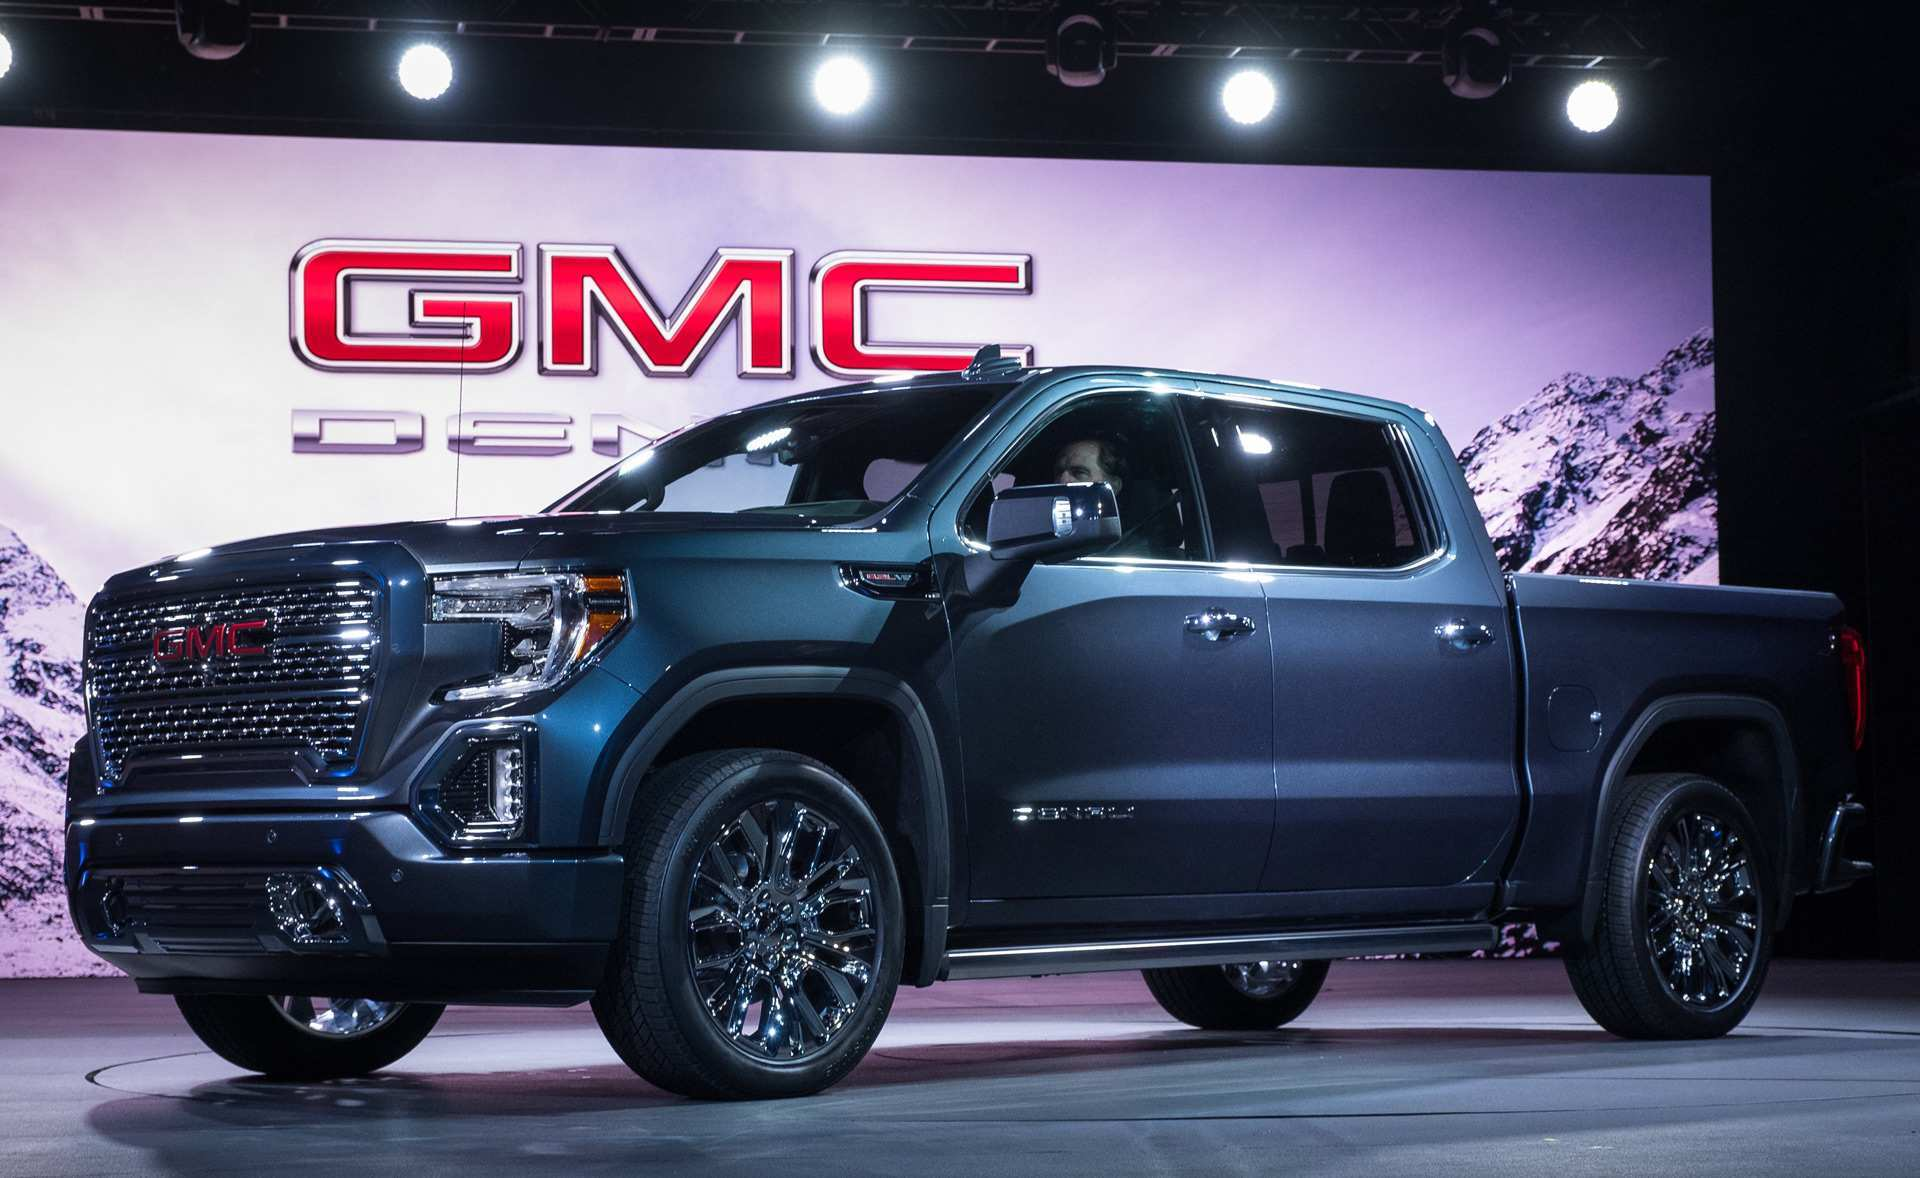 26 All New 2019 Gmc Images Release for 2019 Gmc Images